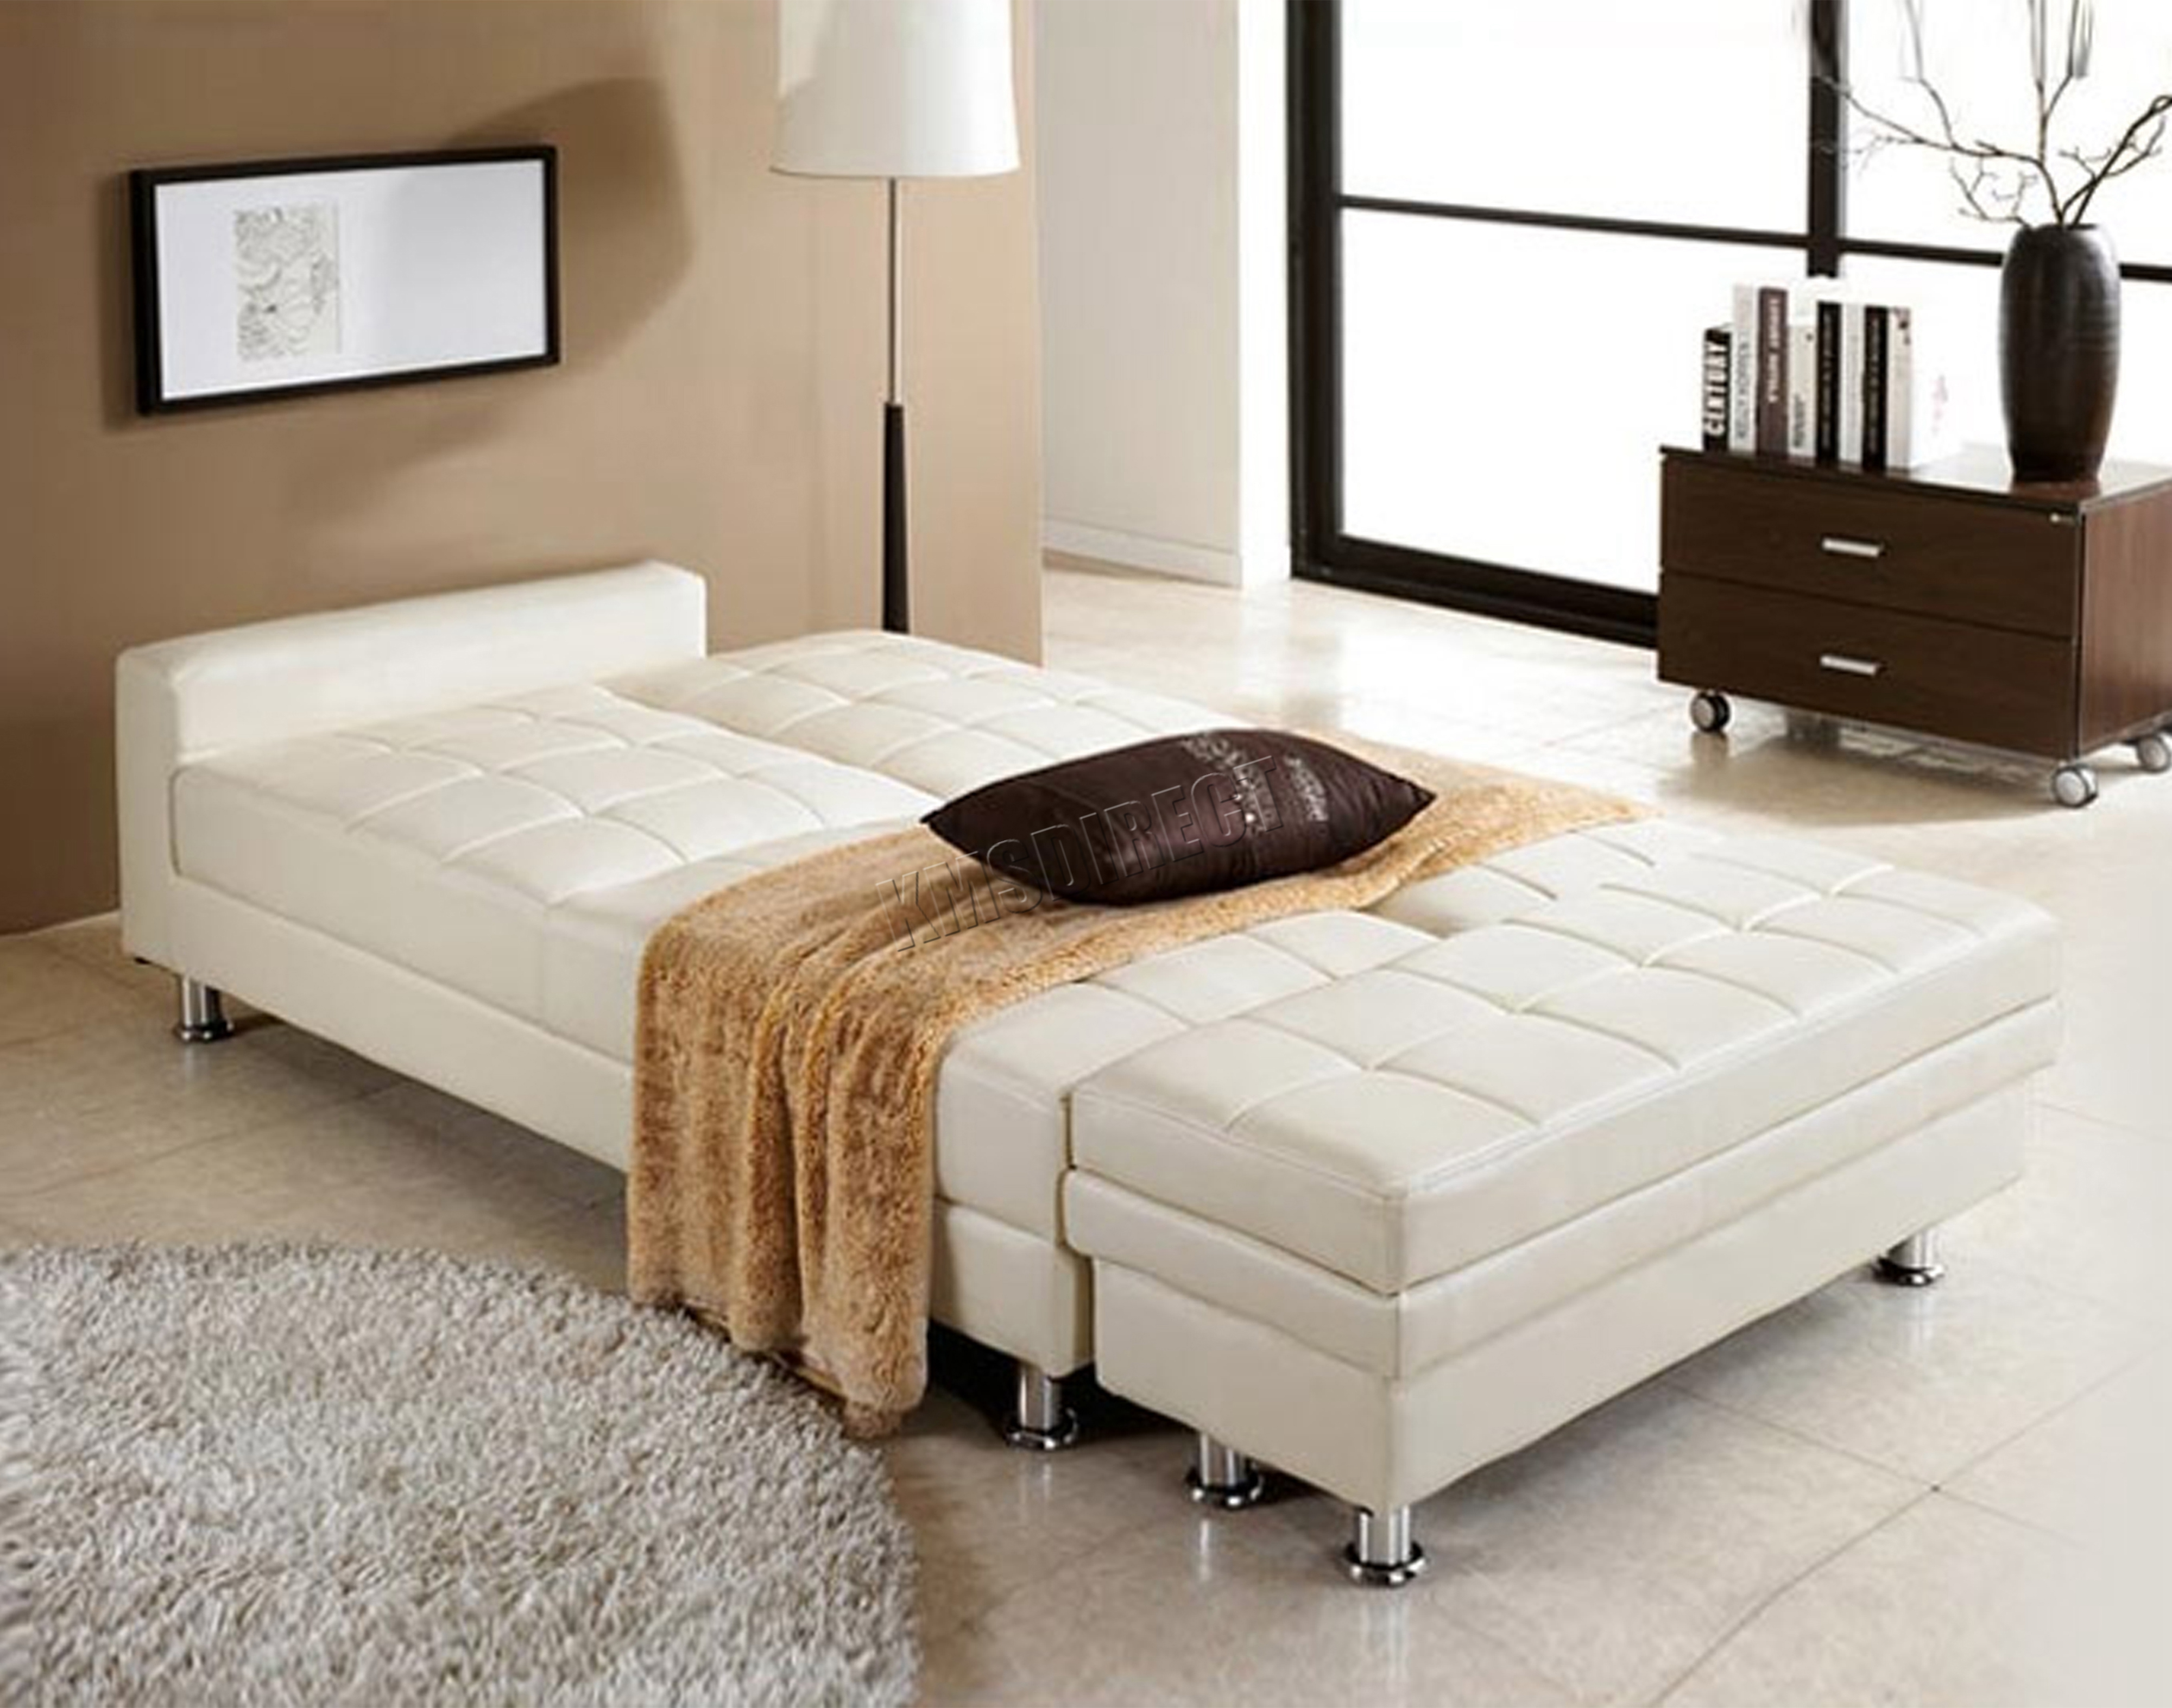 WestWood-PU-Sofa-Bed-With-Storage-3-Seater-Guest-Sleeper-Ottoman-Stool-PSB04